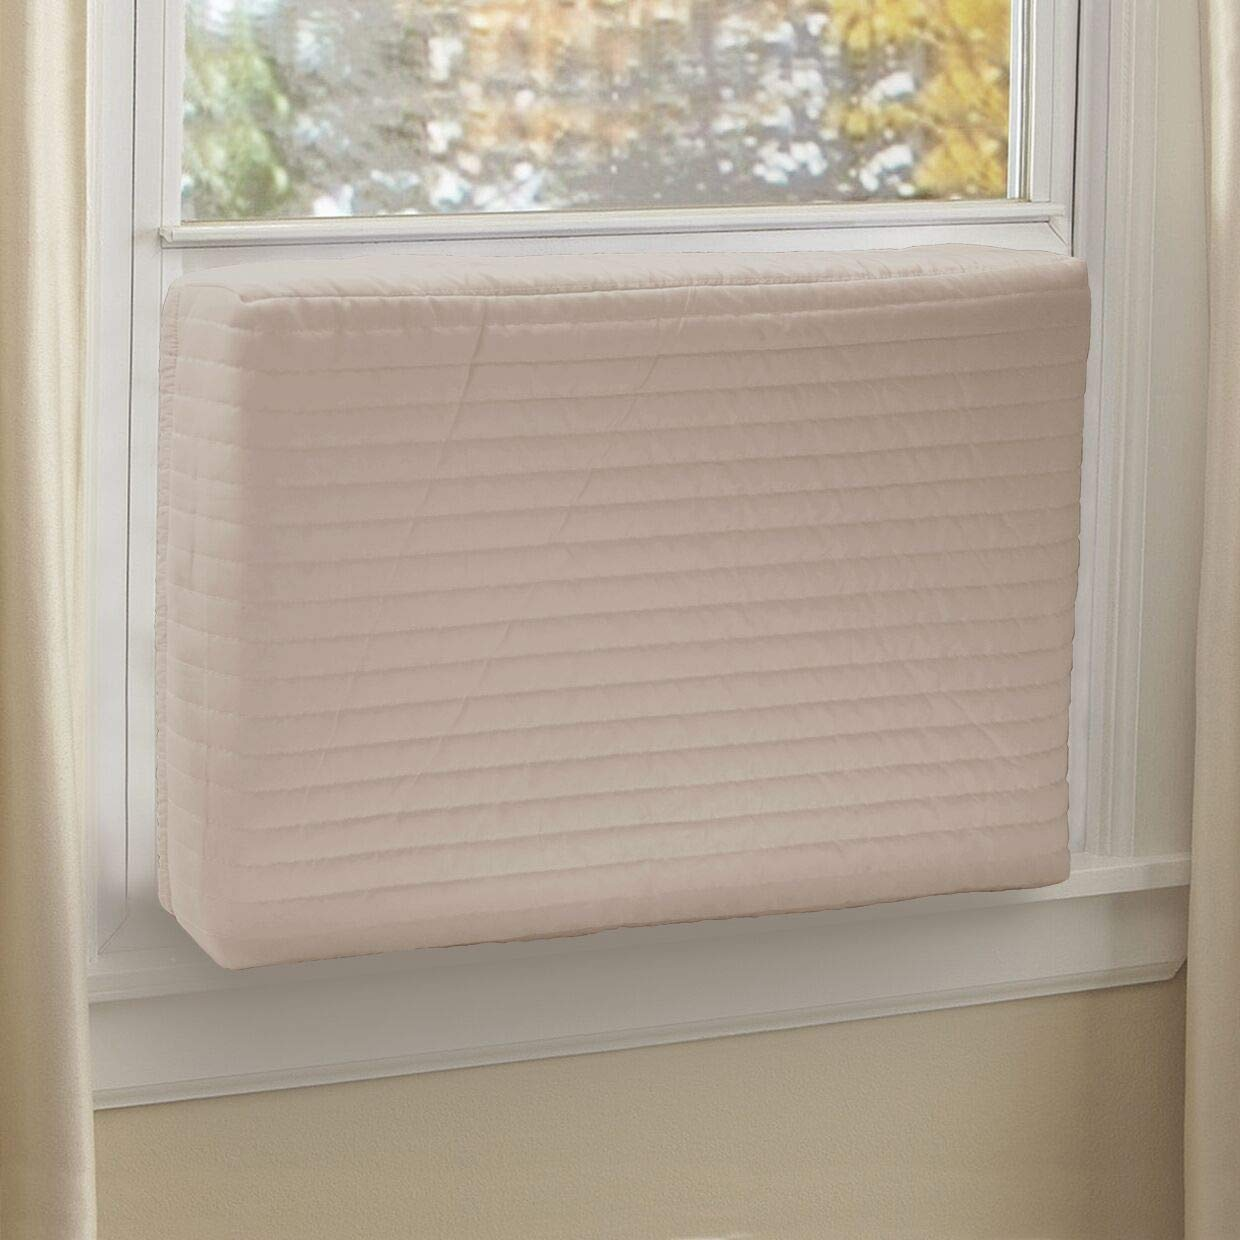 Foozet Indoor Air Conditioner Cover Double Insulation, Large …